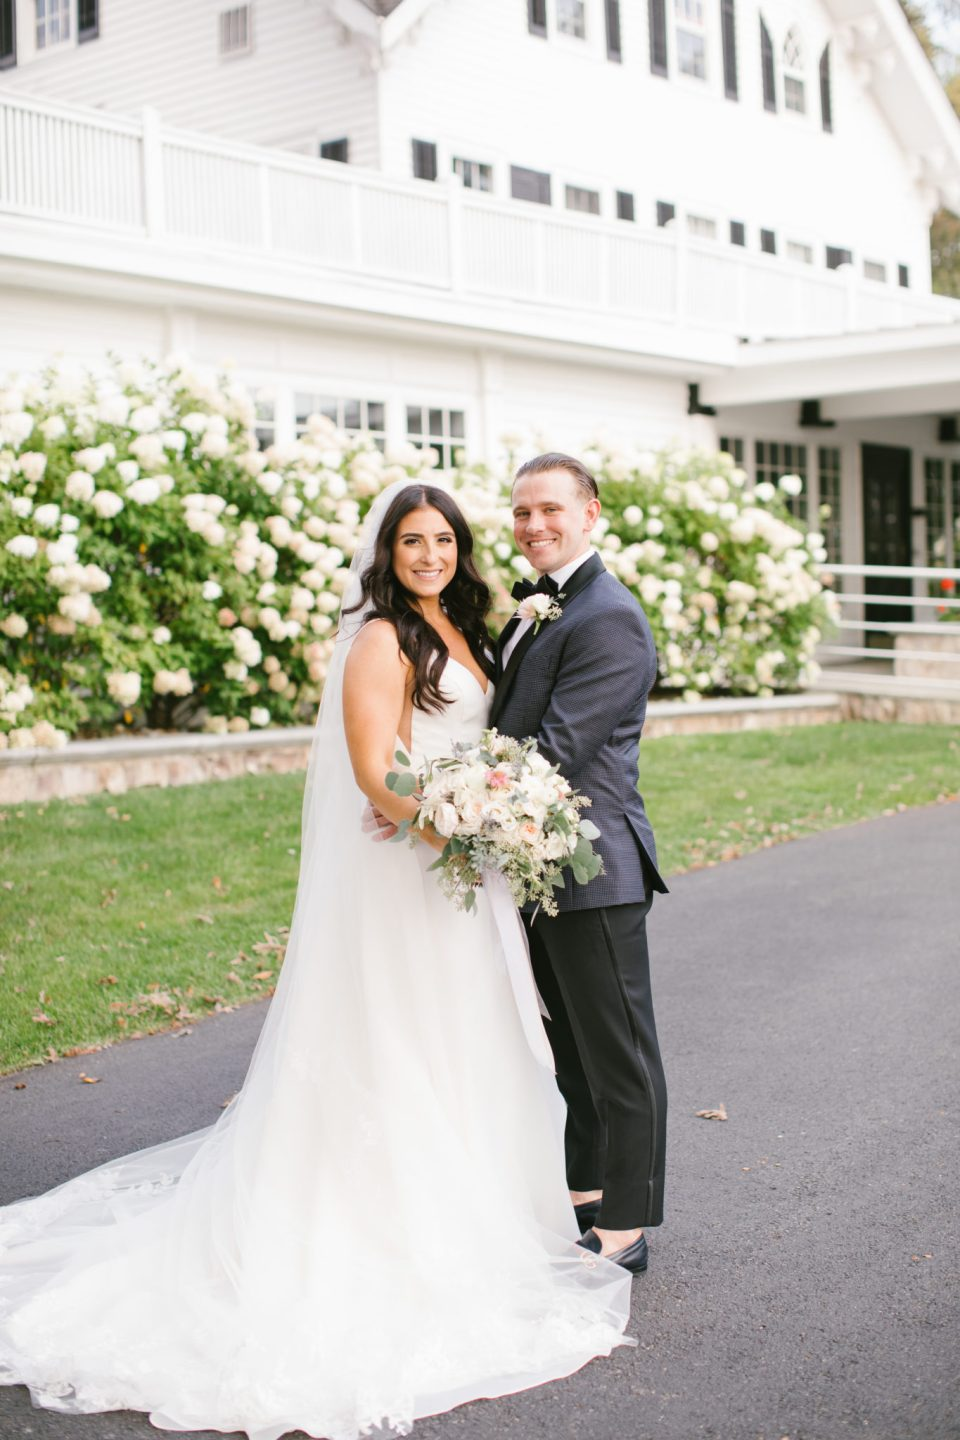 Ashley Mac Photographs photographs bride and groom in New Jersey